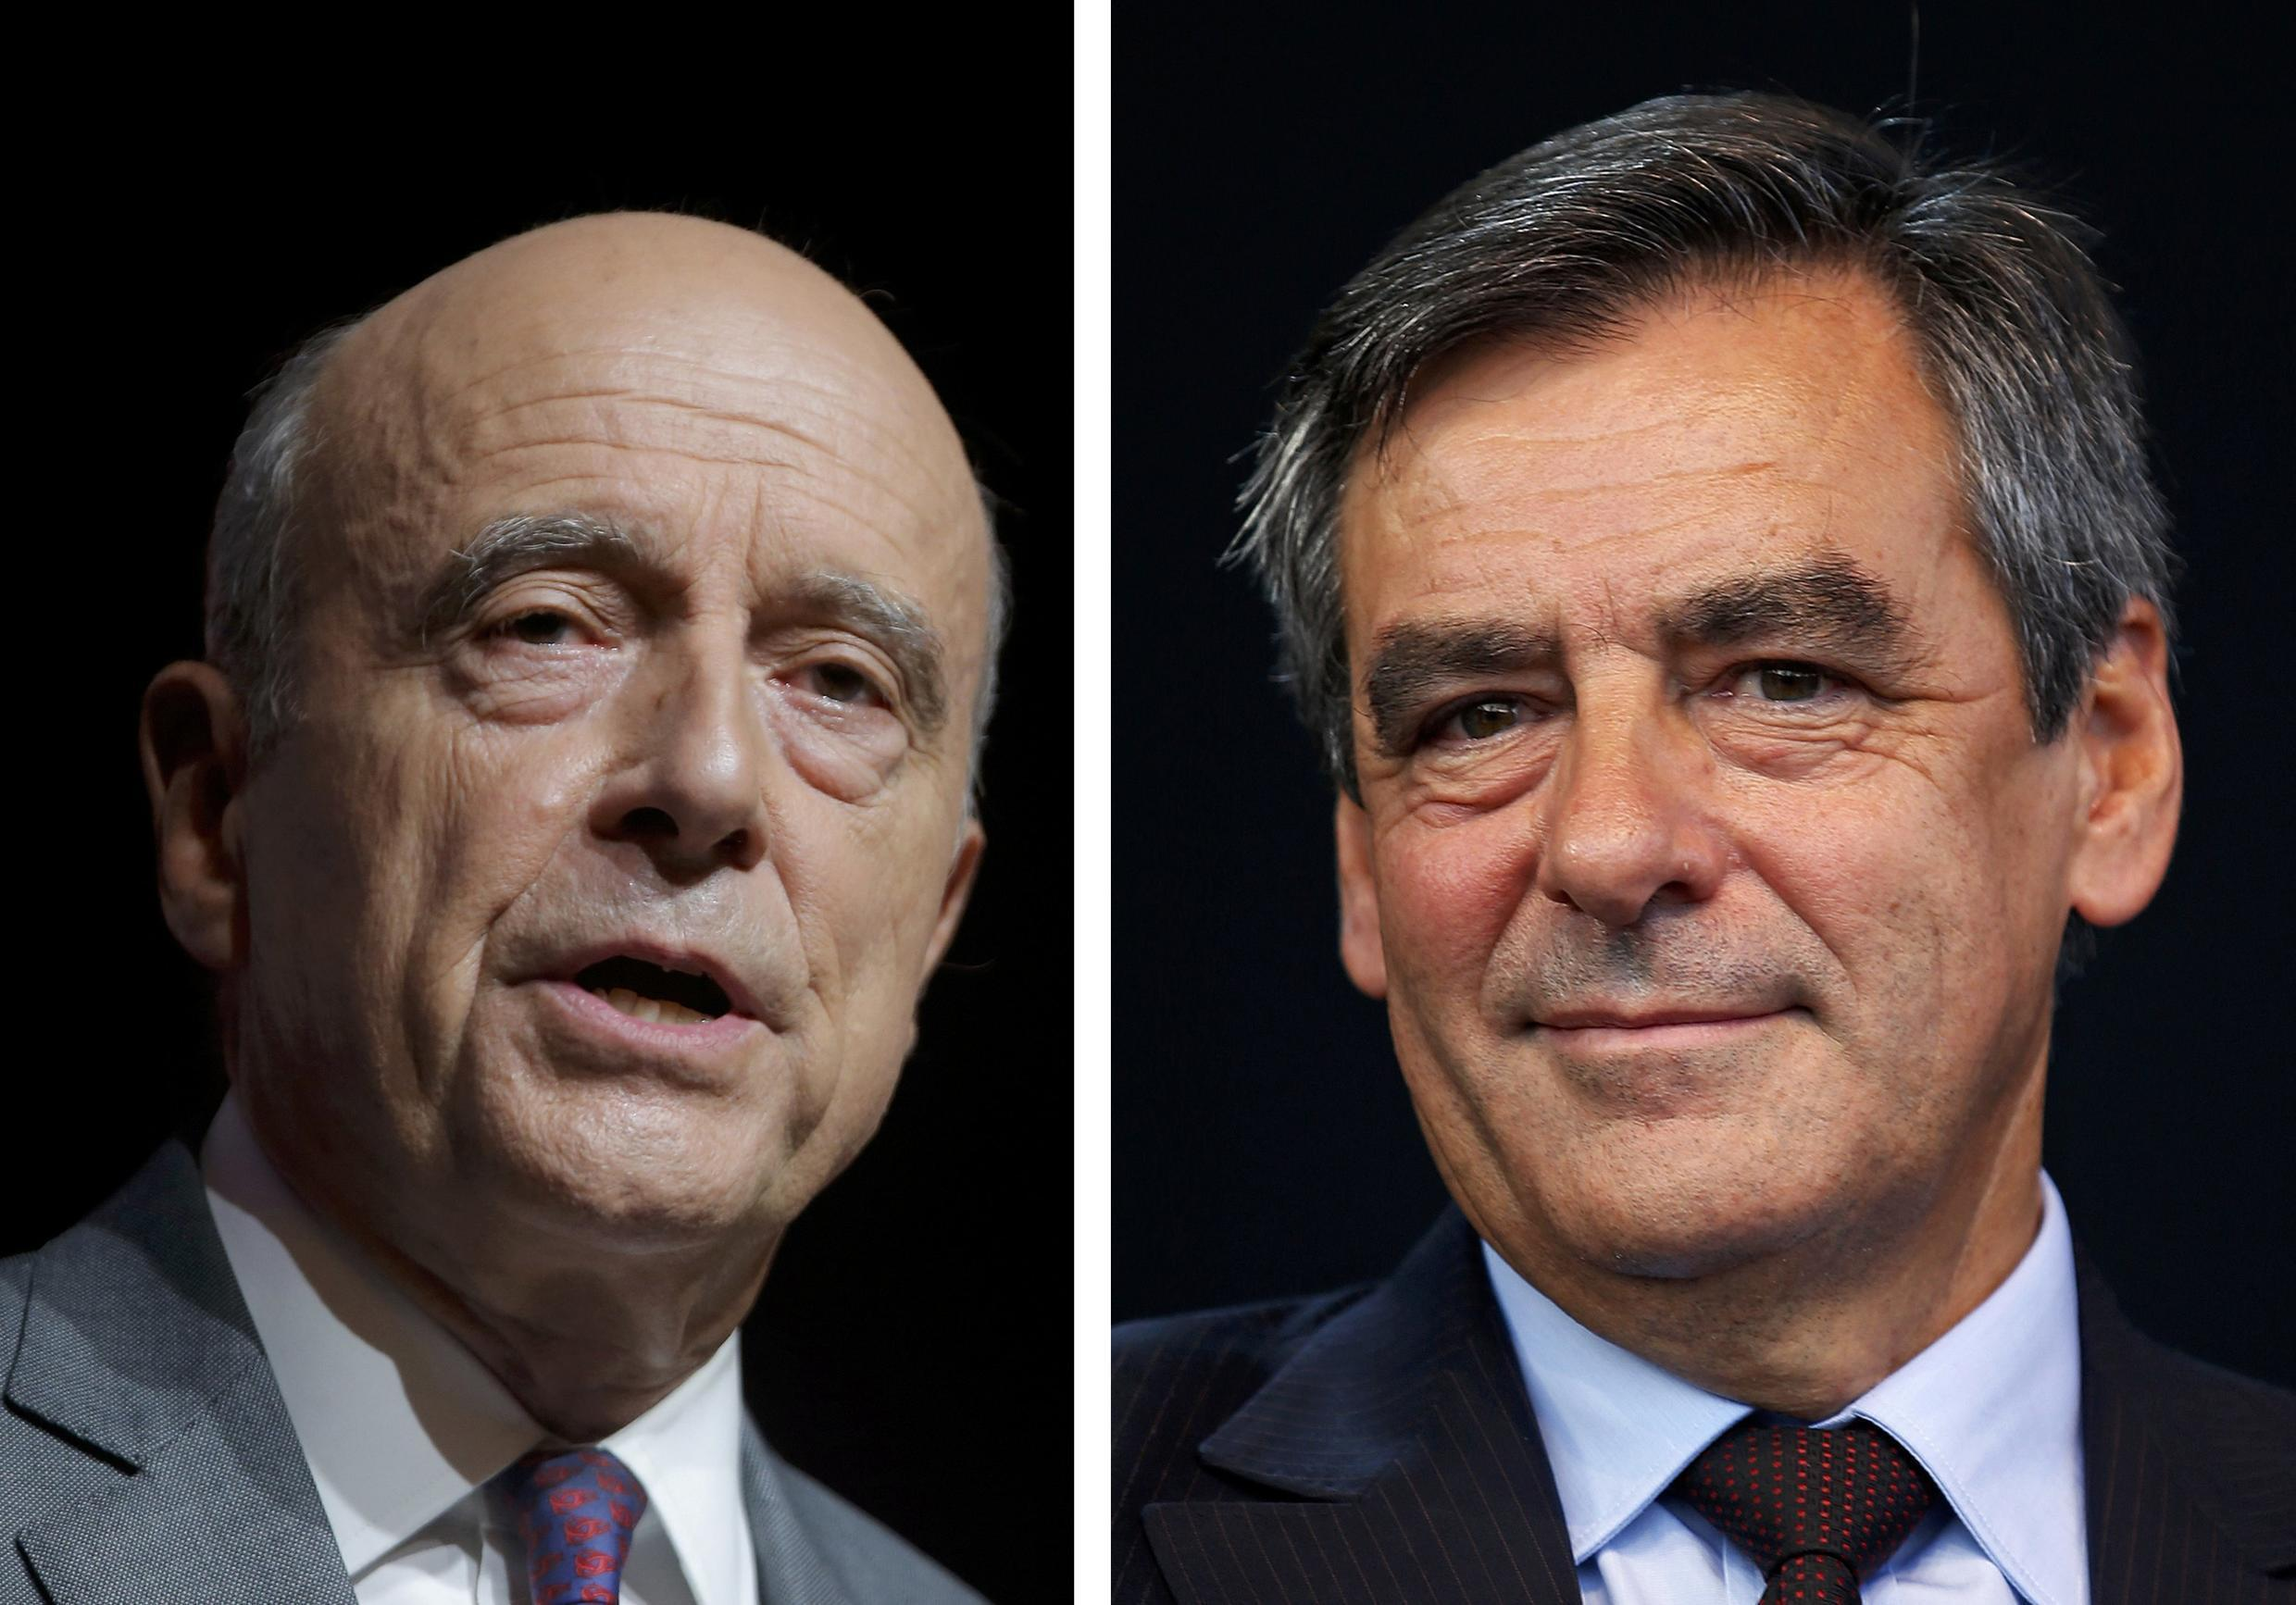 A combination of file photos shows Alain Juppe (L), current mayor of Bordeaux and François Fillon, a former prime minister, who lead in the first round French center-right presidential primary election November 20, 2016.